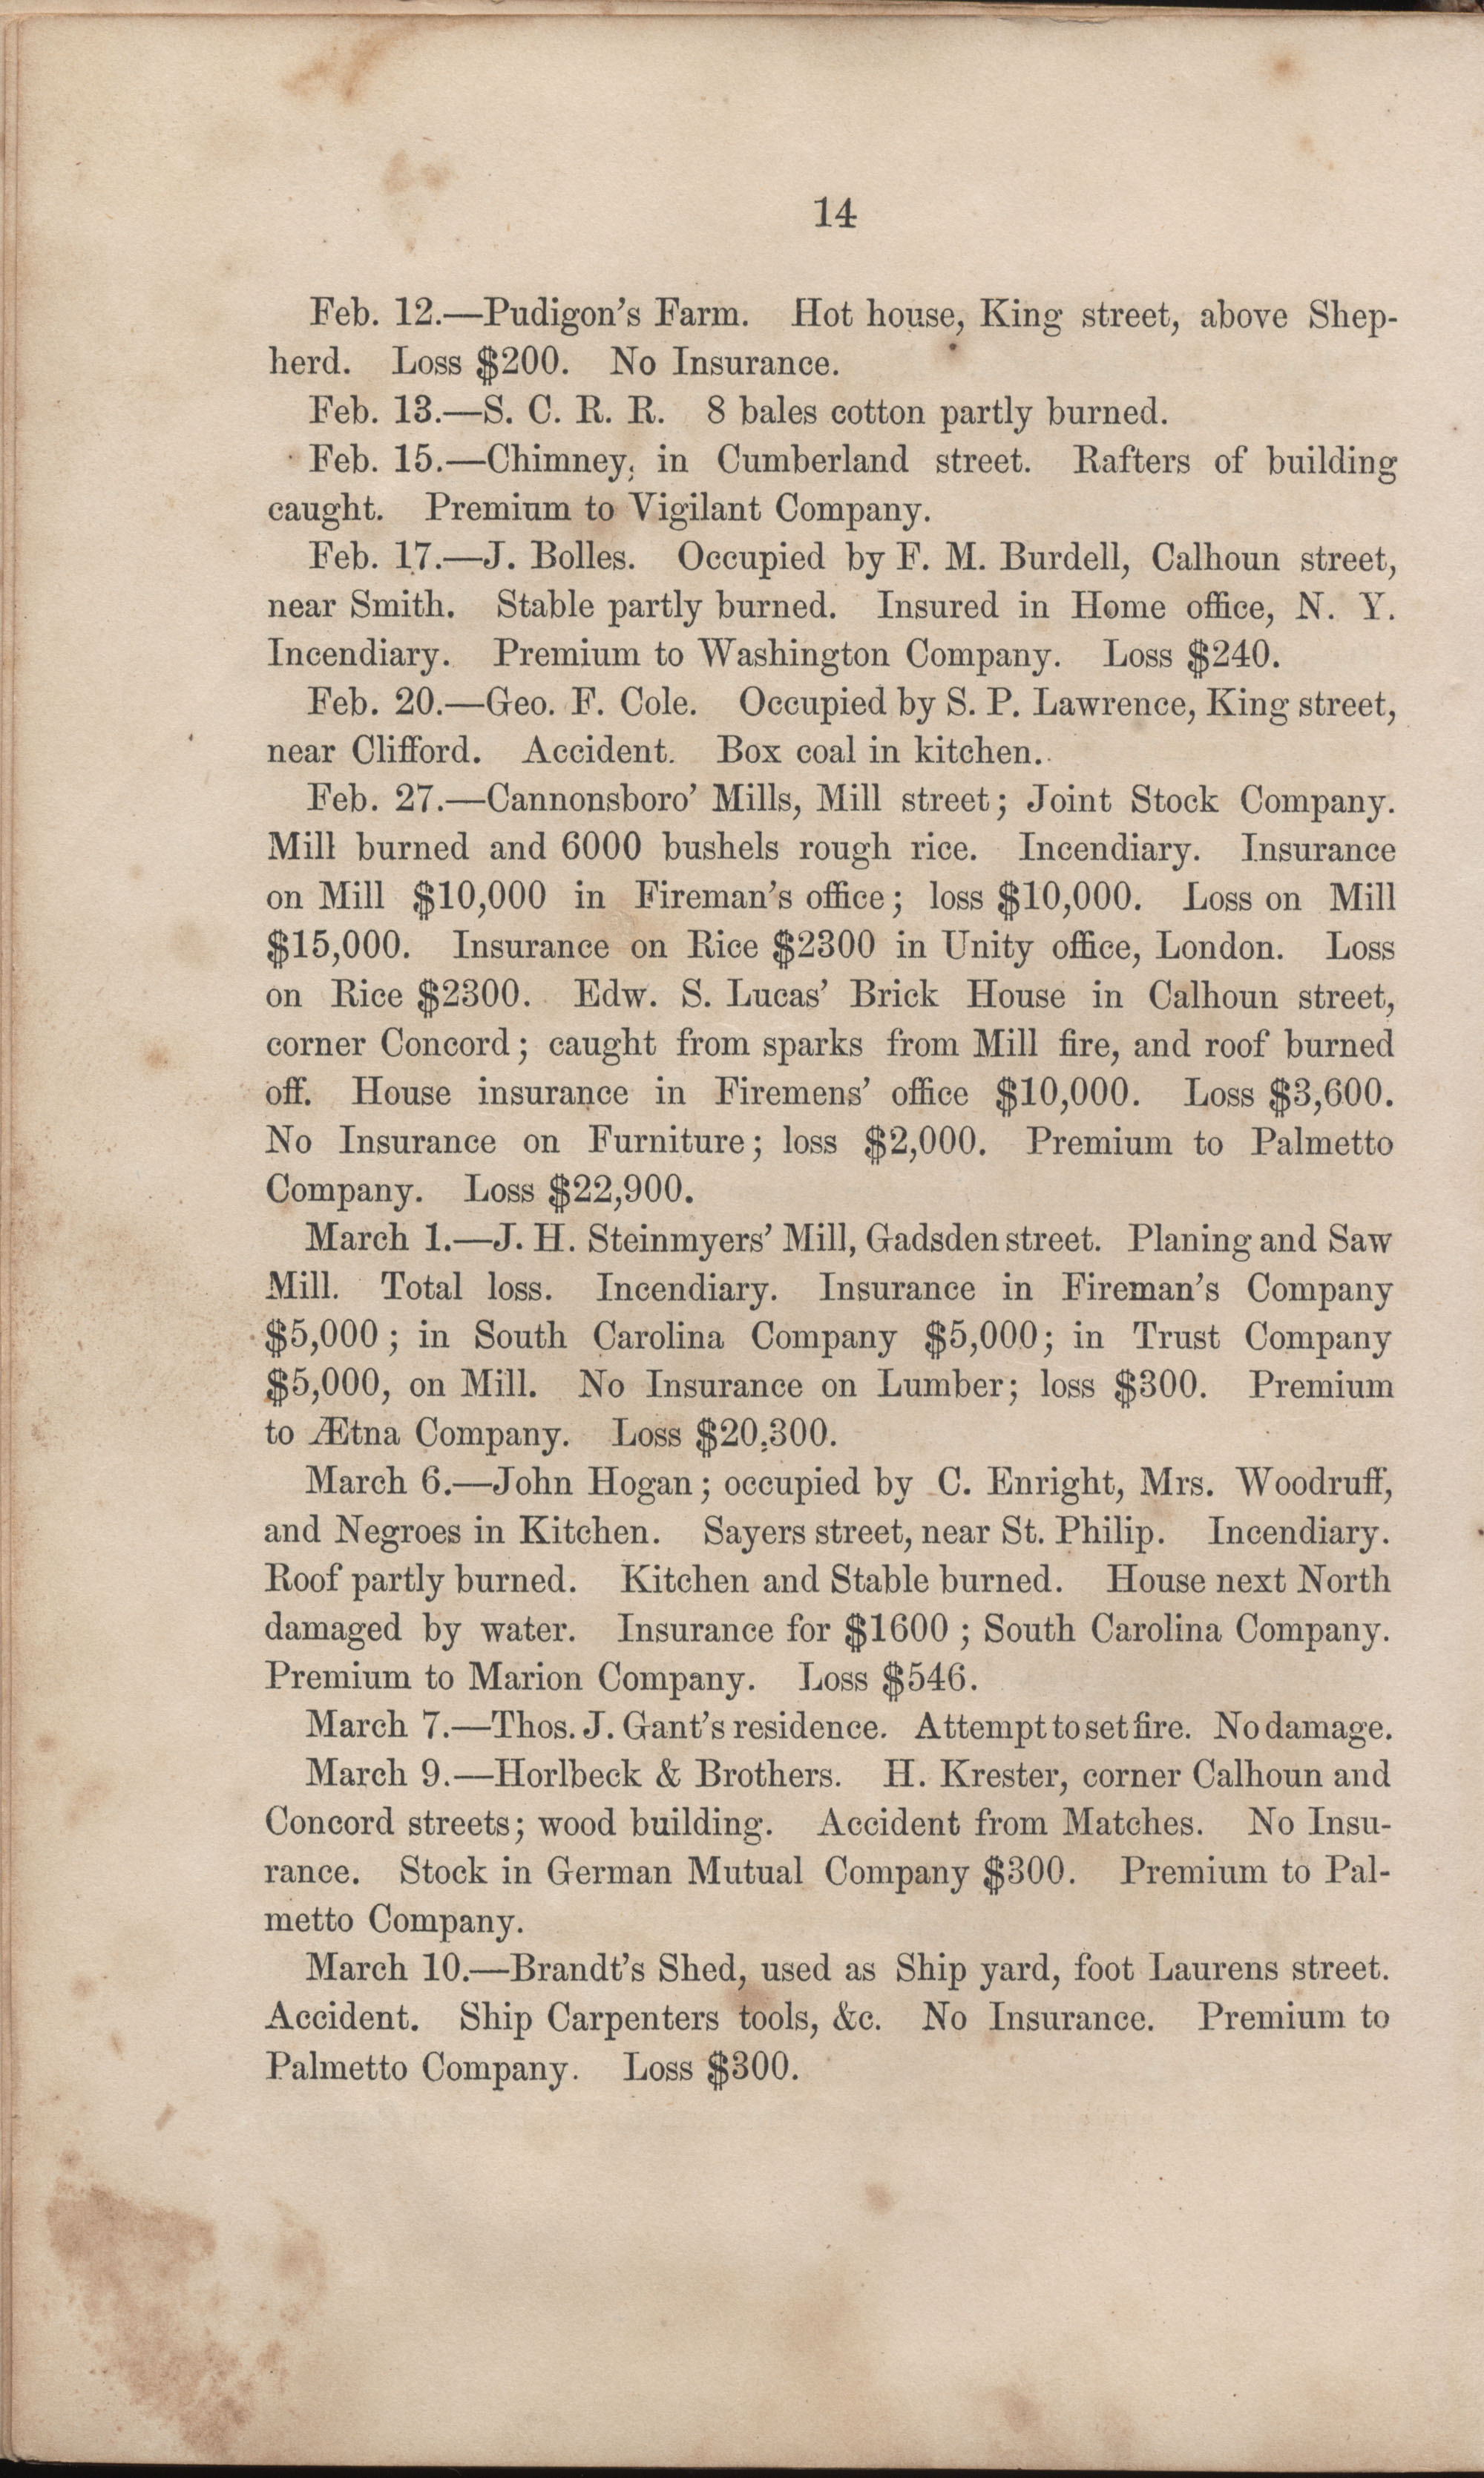 Annual Report of the Chief of the Fire Department of the City of Charleston, page 40